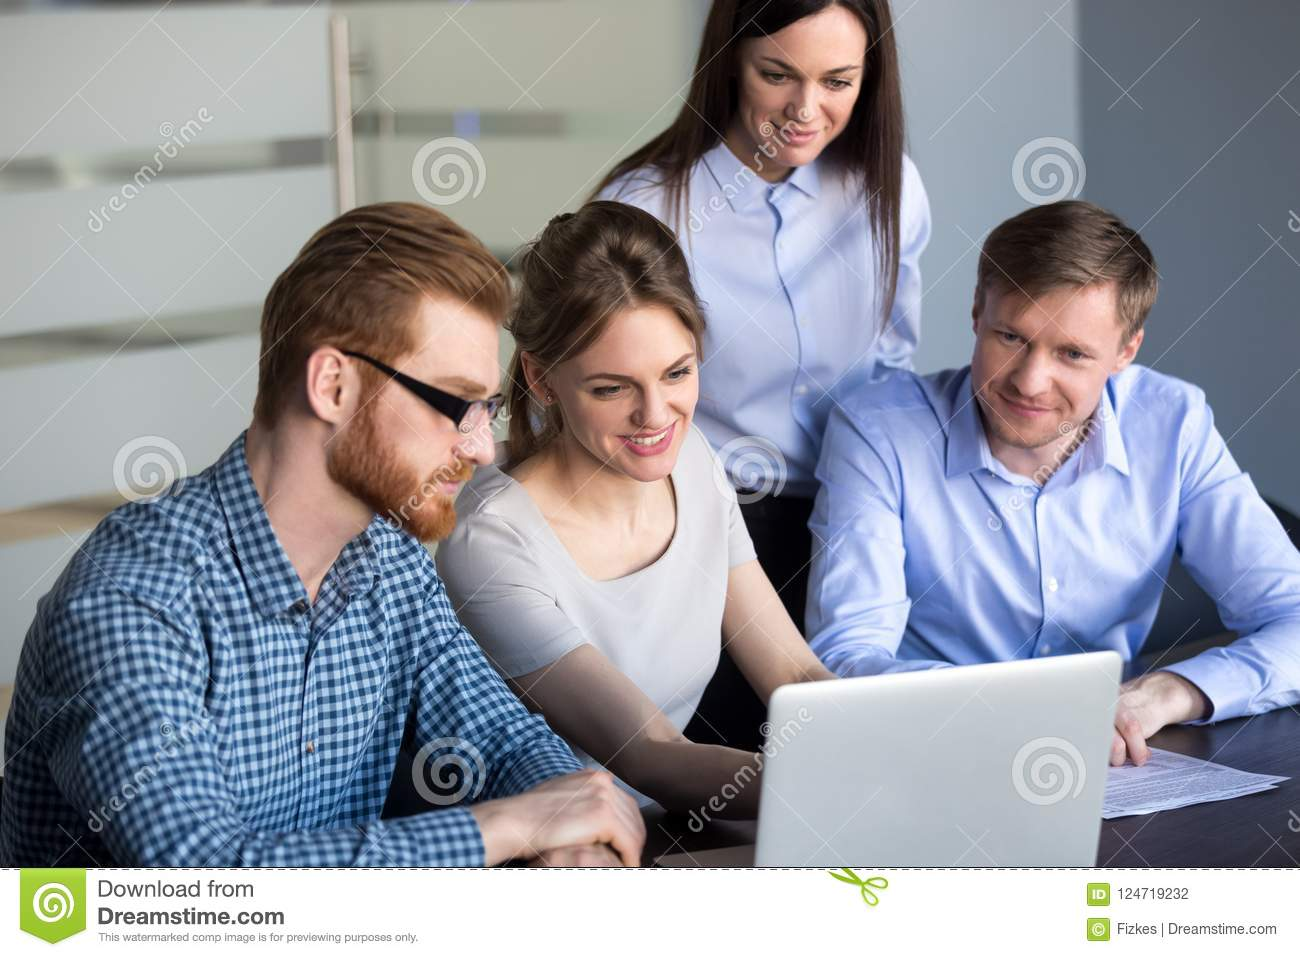 Excited employees looking at laptop observing growing statistics